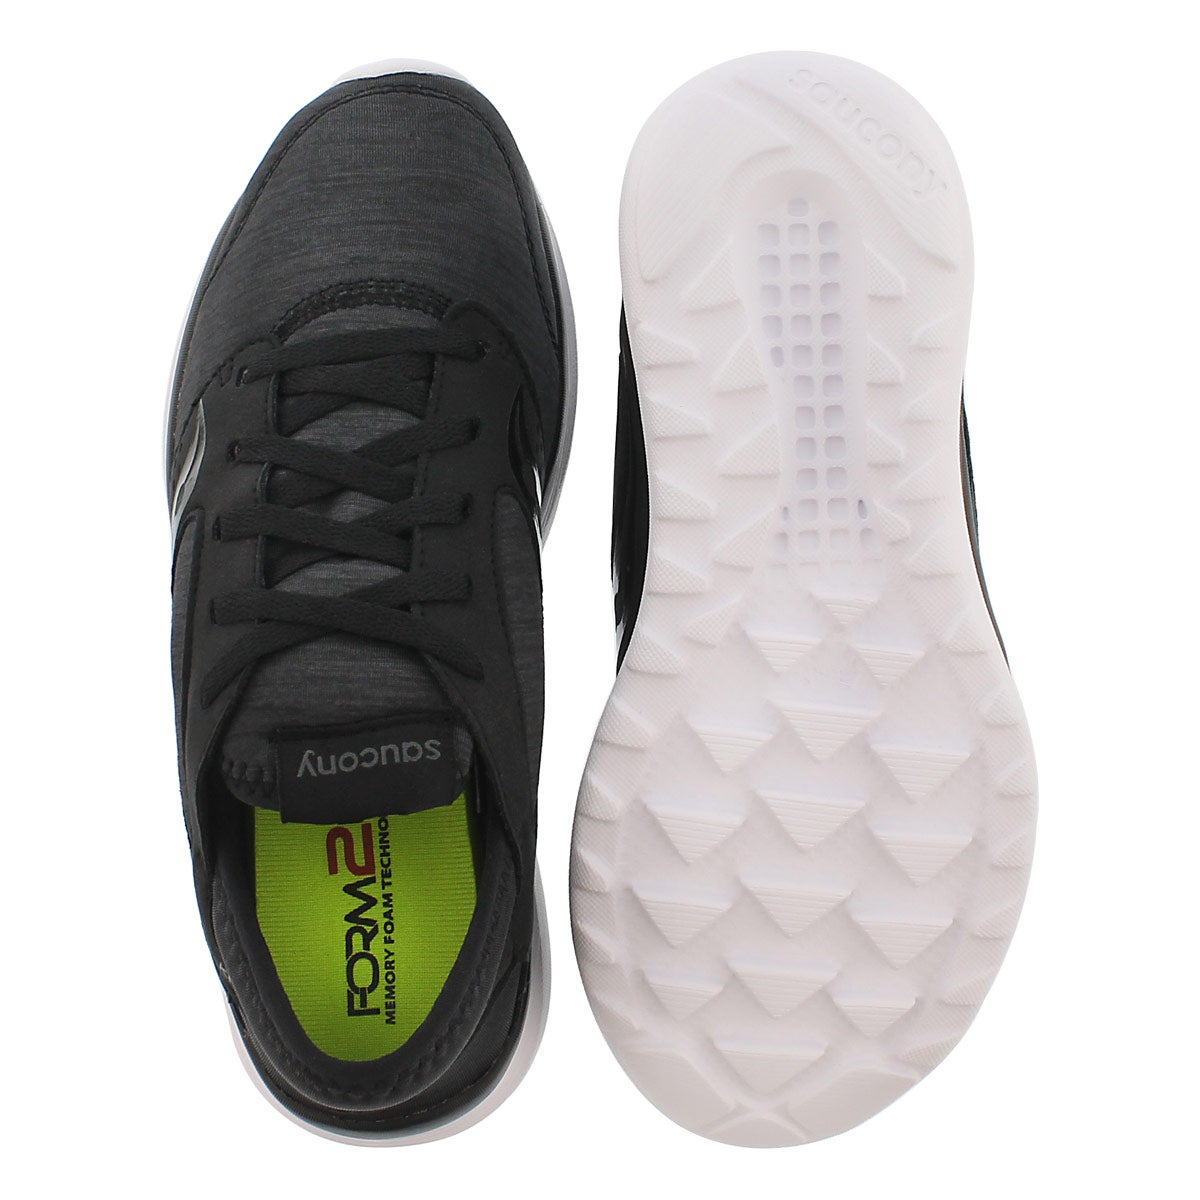 Lds Kineta Relay blk/blk running shoe